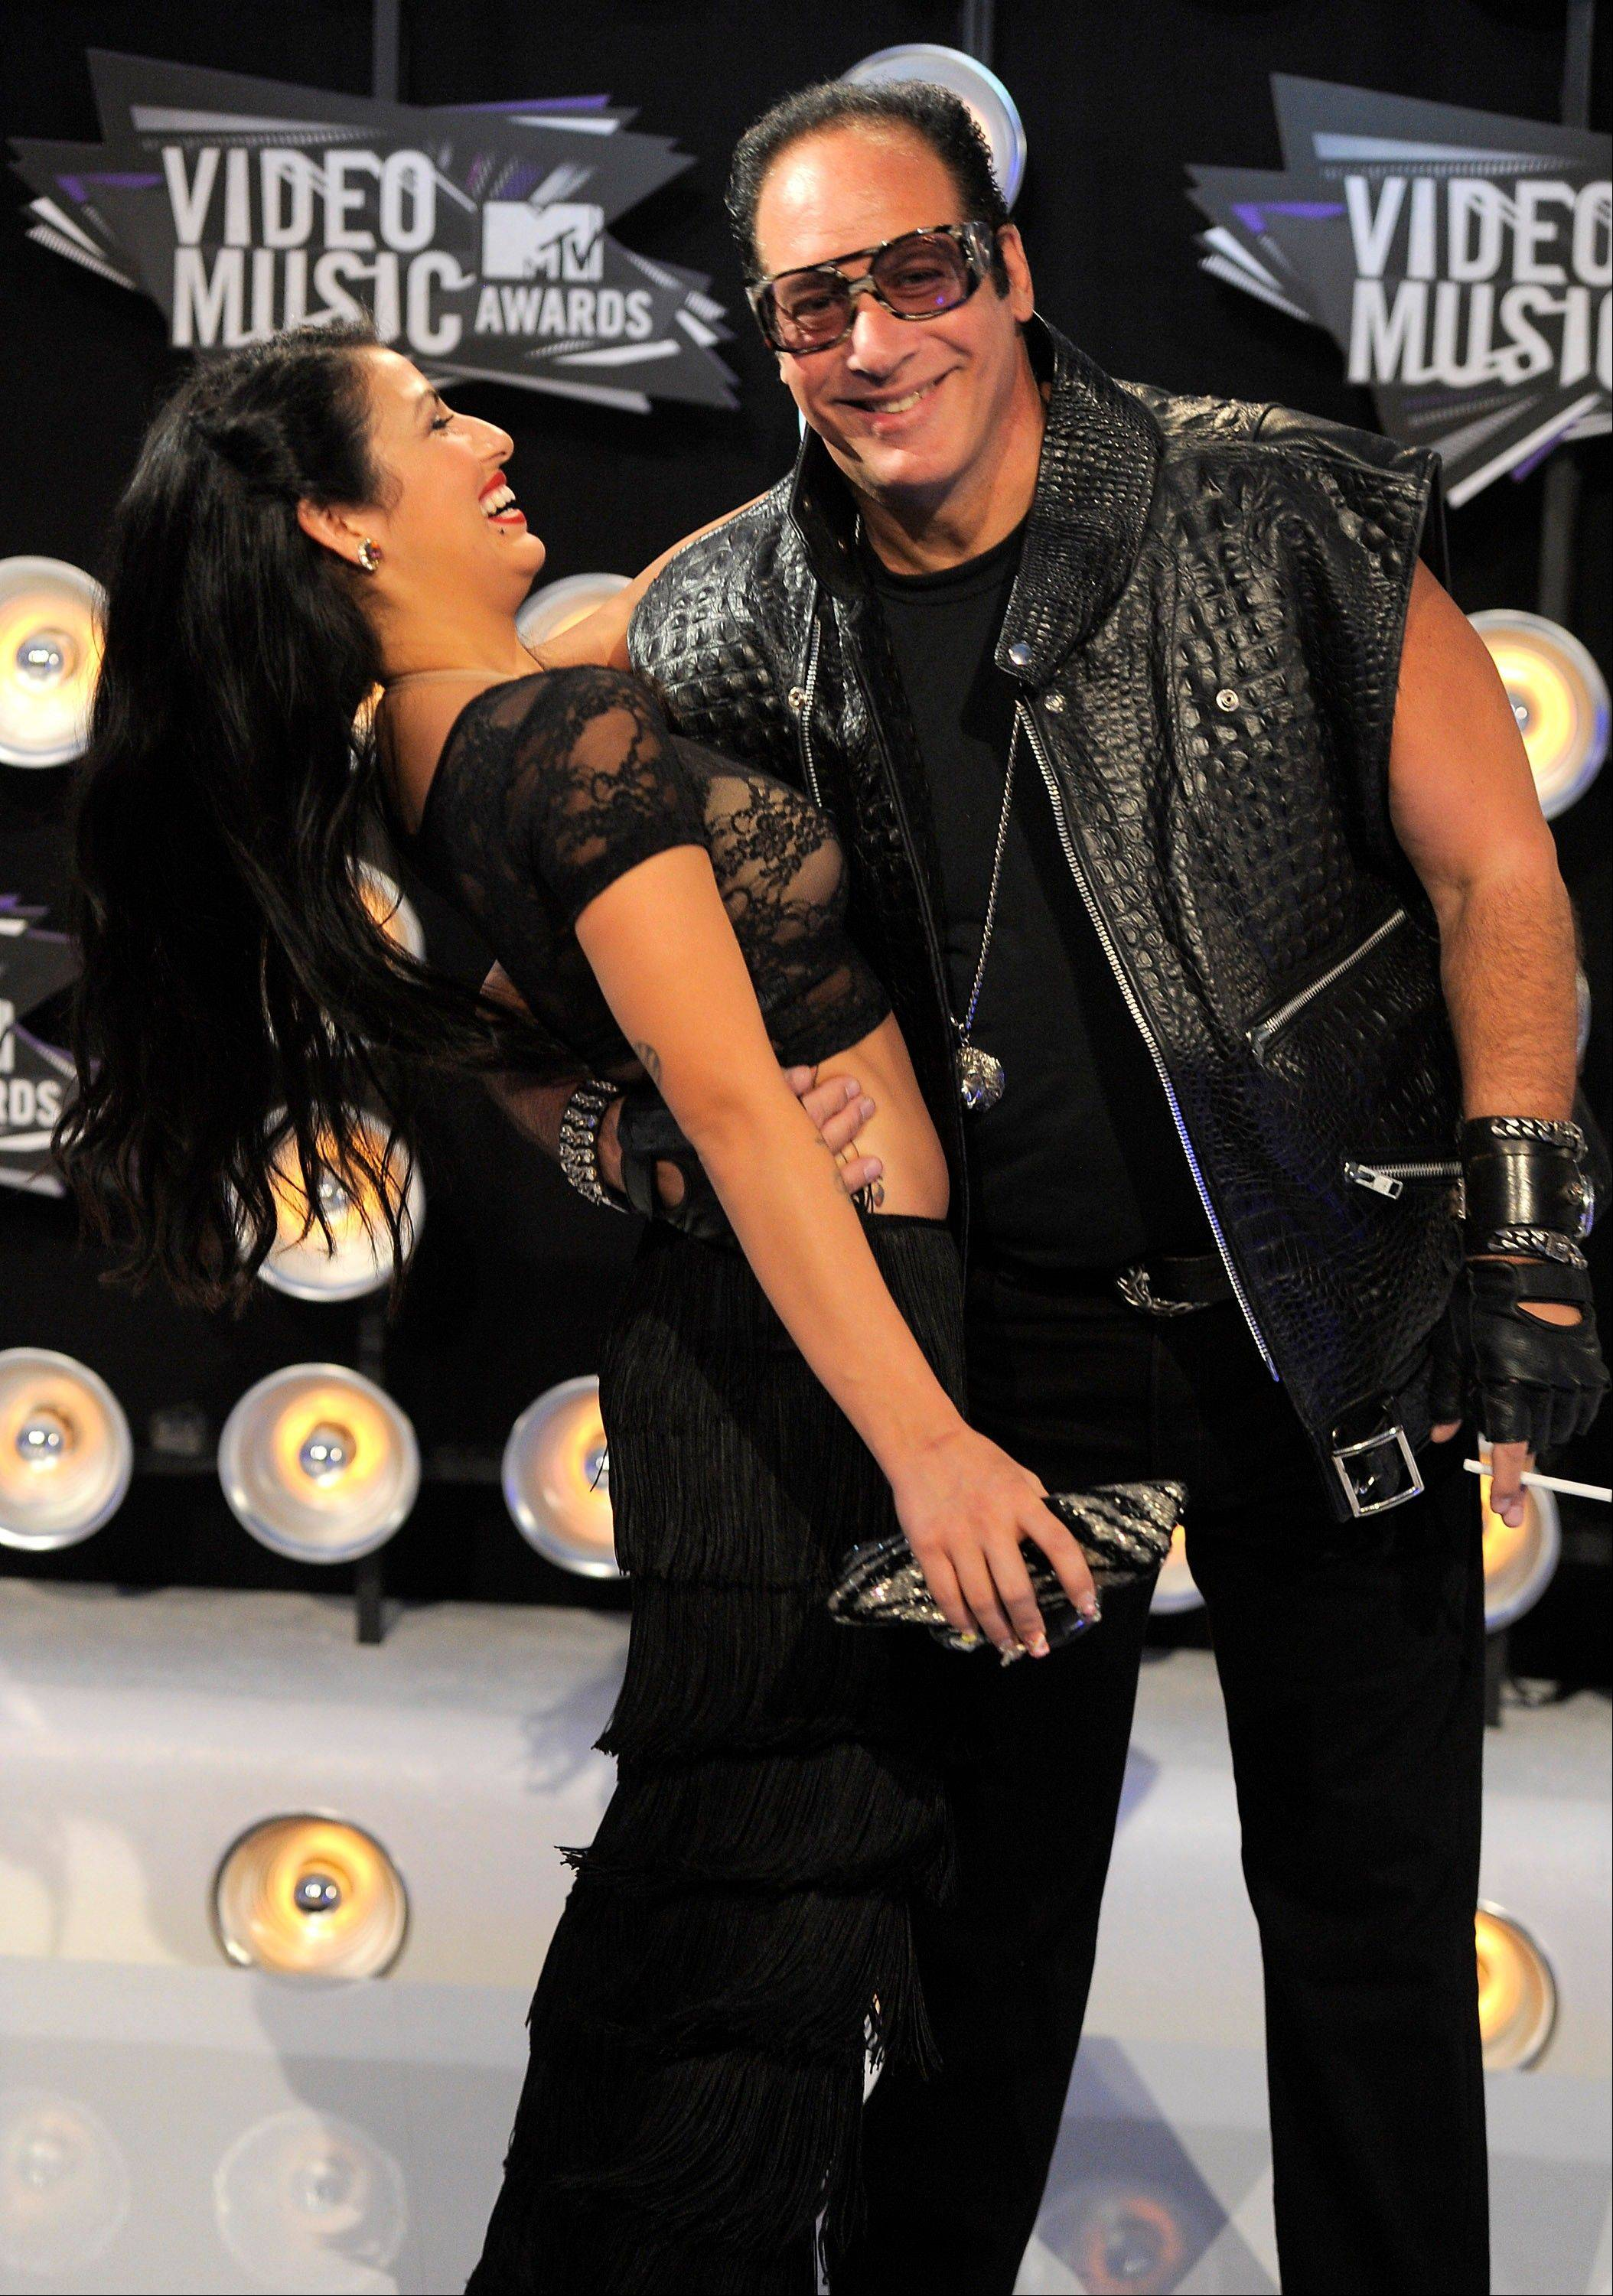 Comedian Andrew Dice Clay has a little fun with Valerie Vasquez before heading into the VMAs on Sunday in Los Angeles.